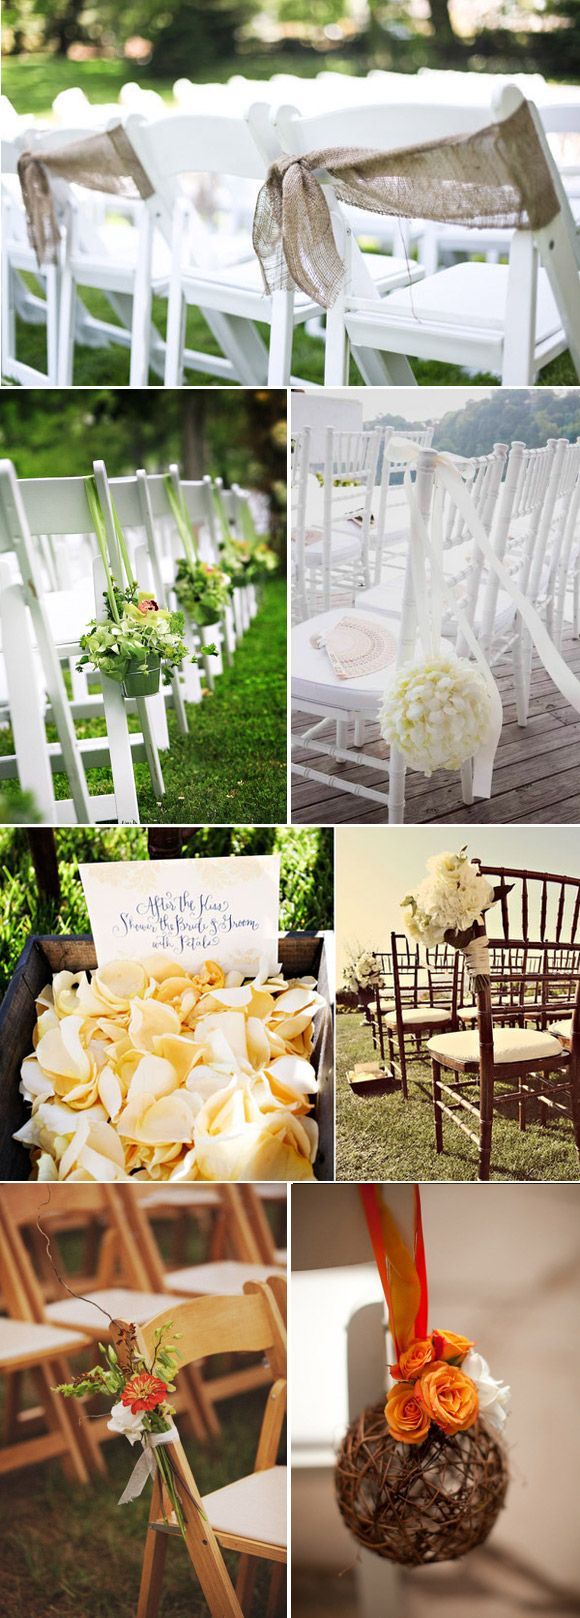 ideas de decoracin de sillas de boda ideas innovias bodas vintage